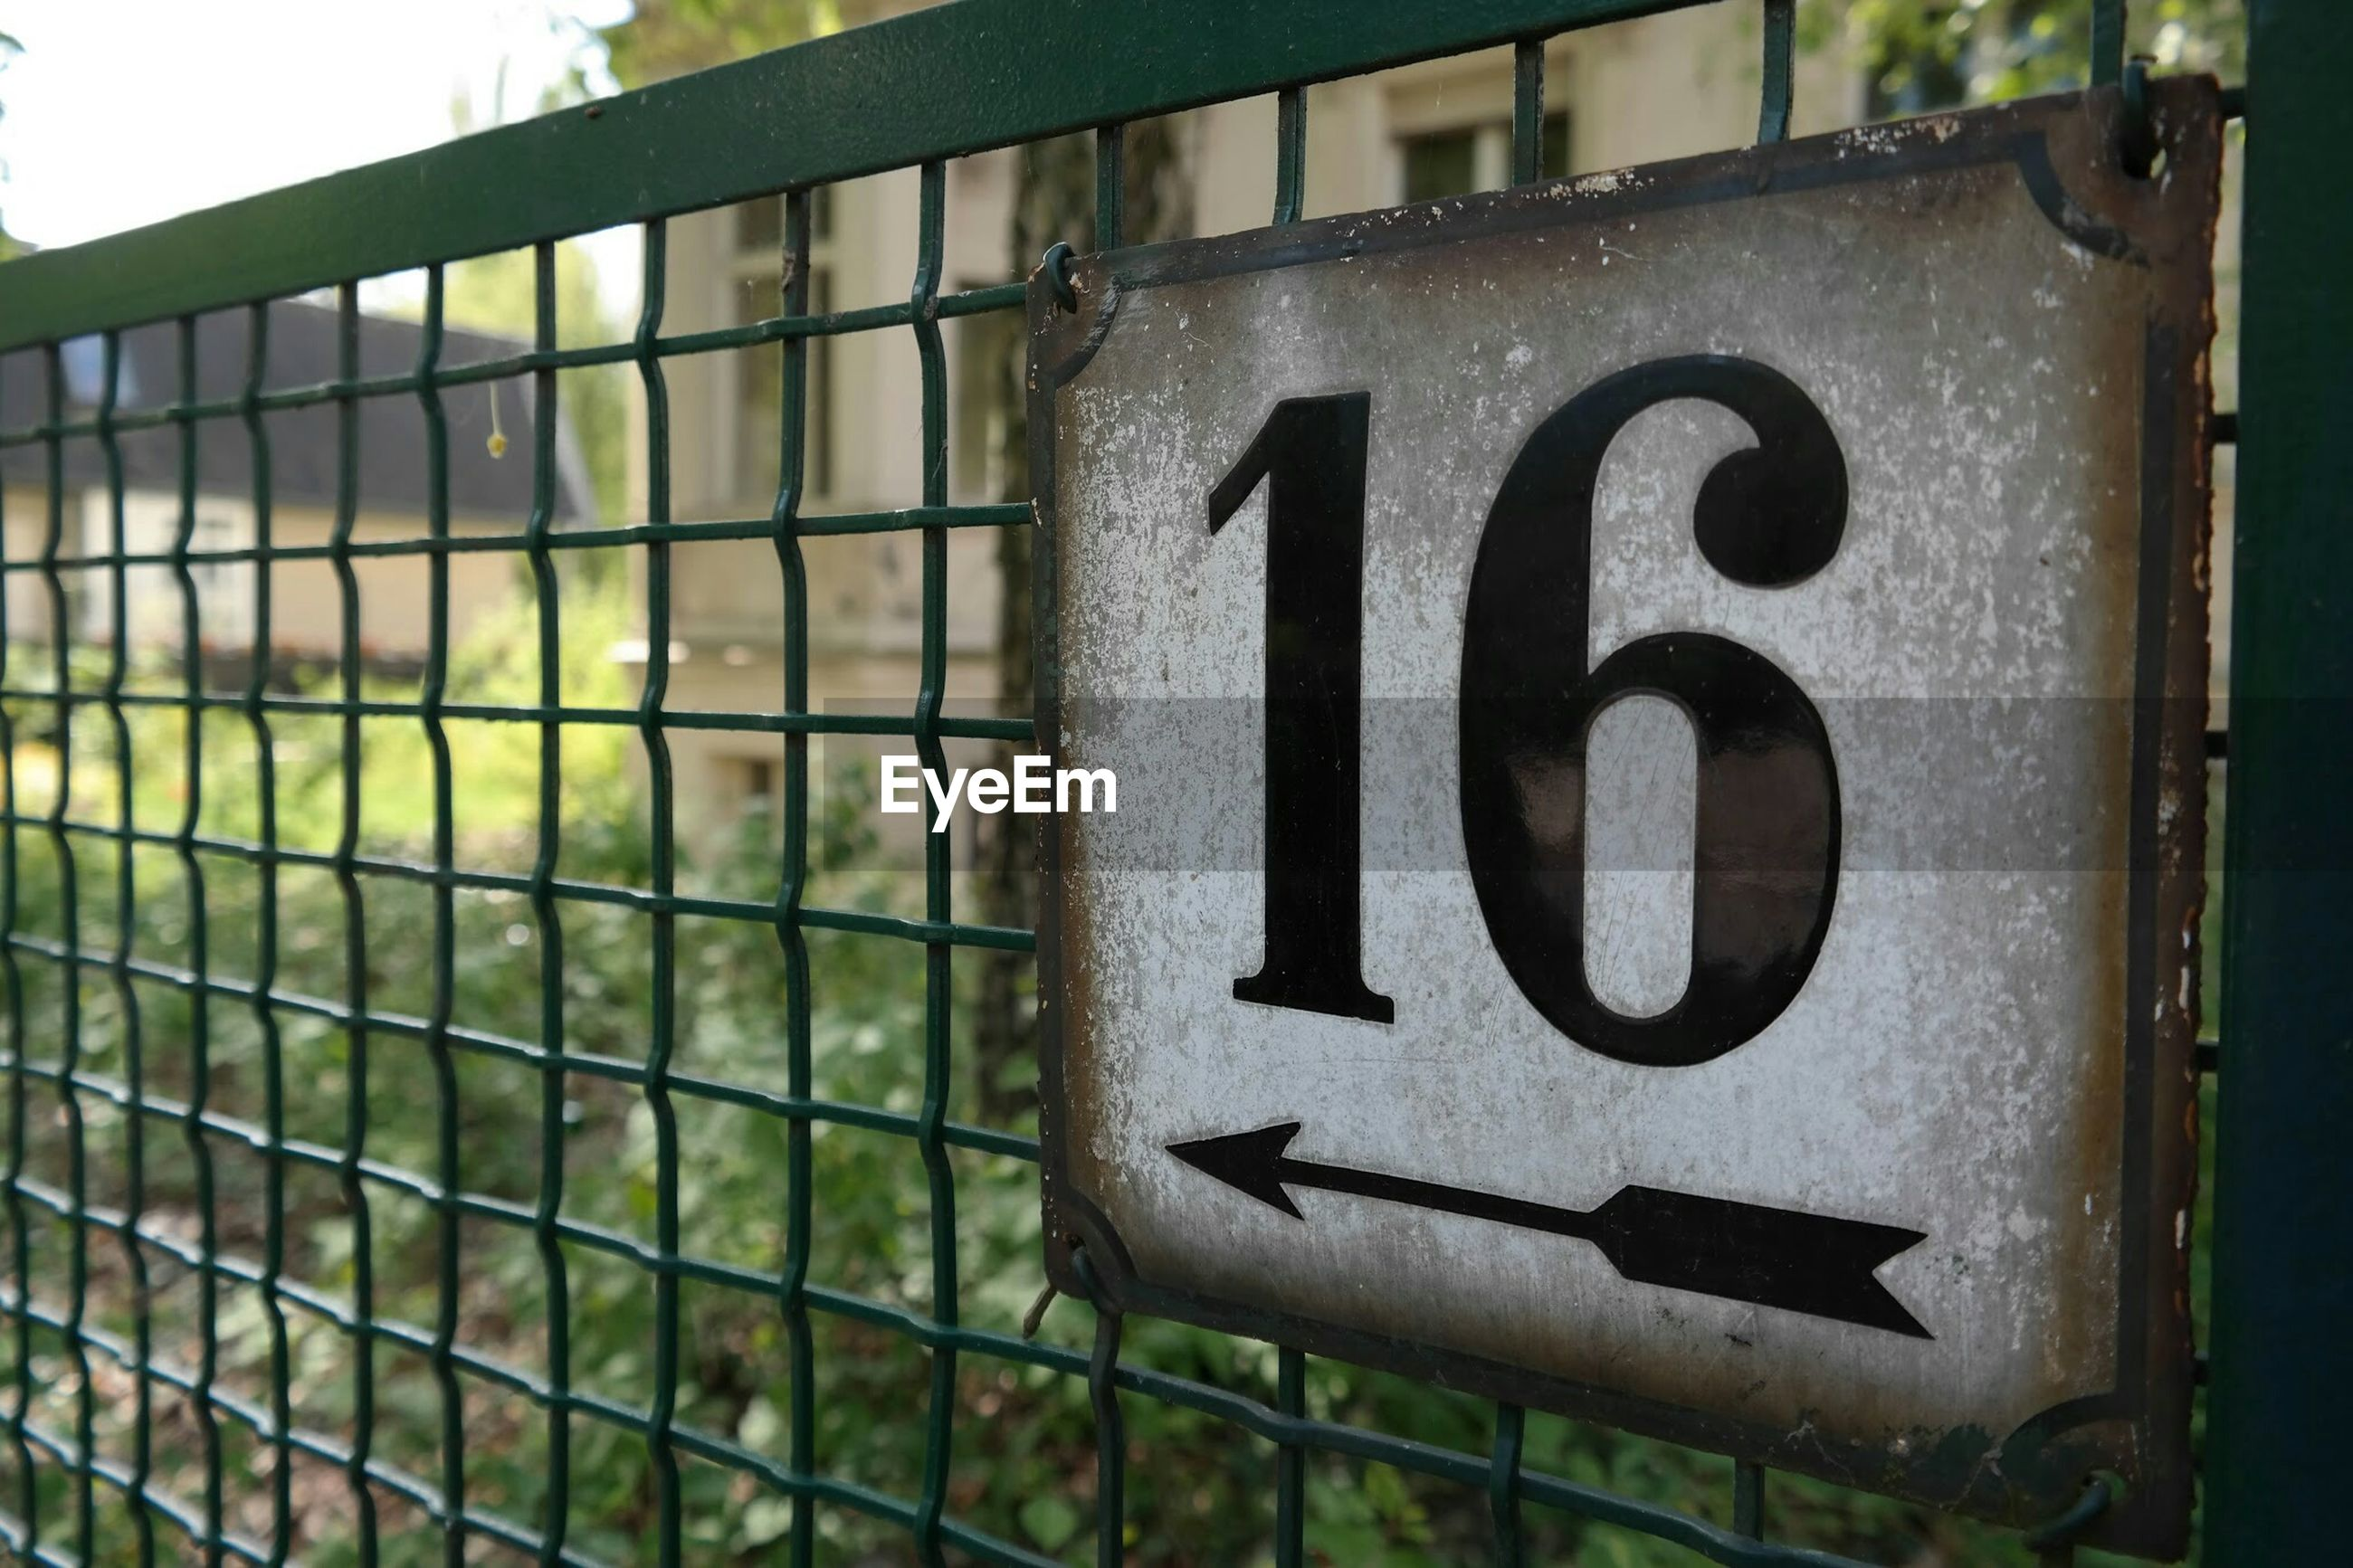 Close-up of number 15 and arrow symbol on fence